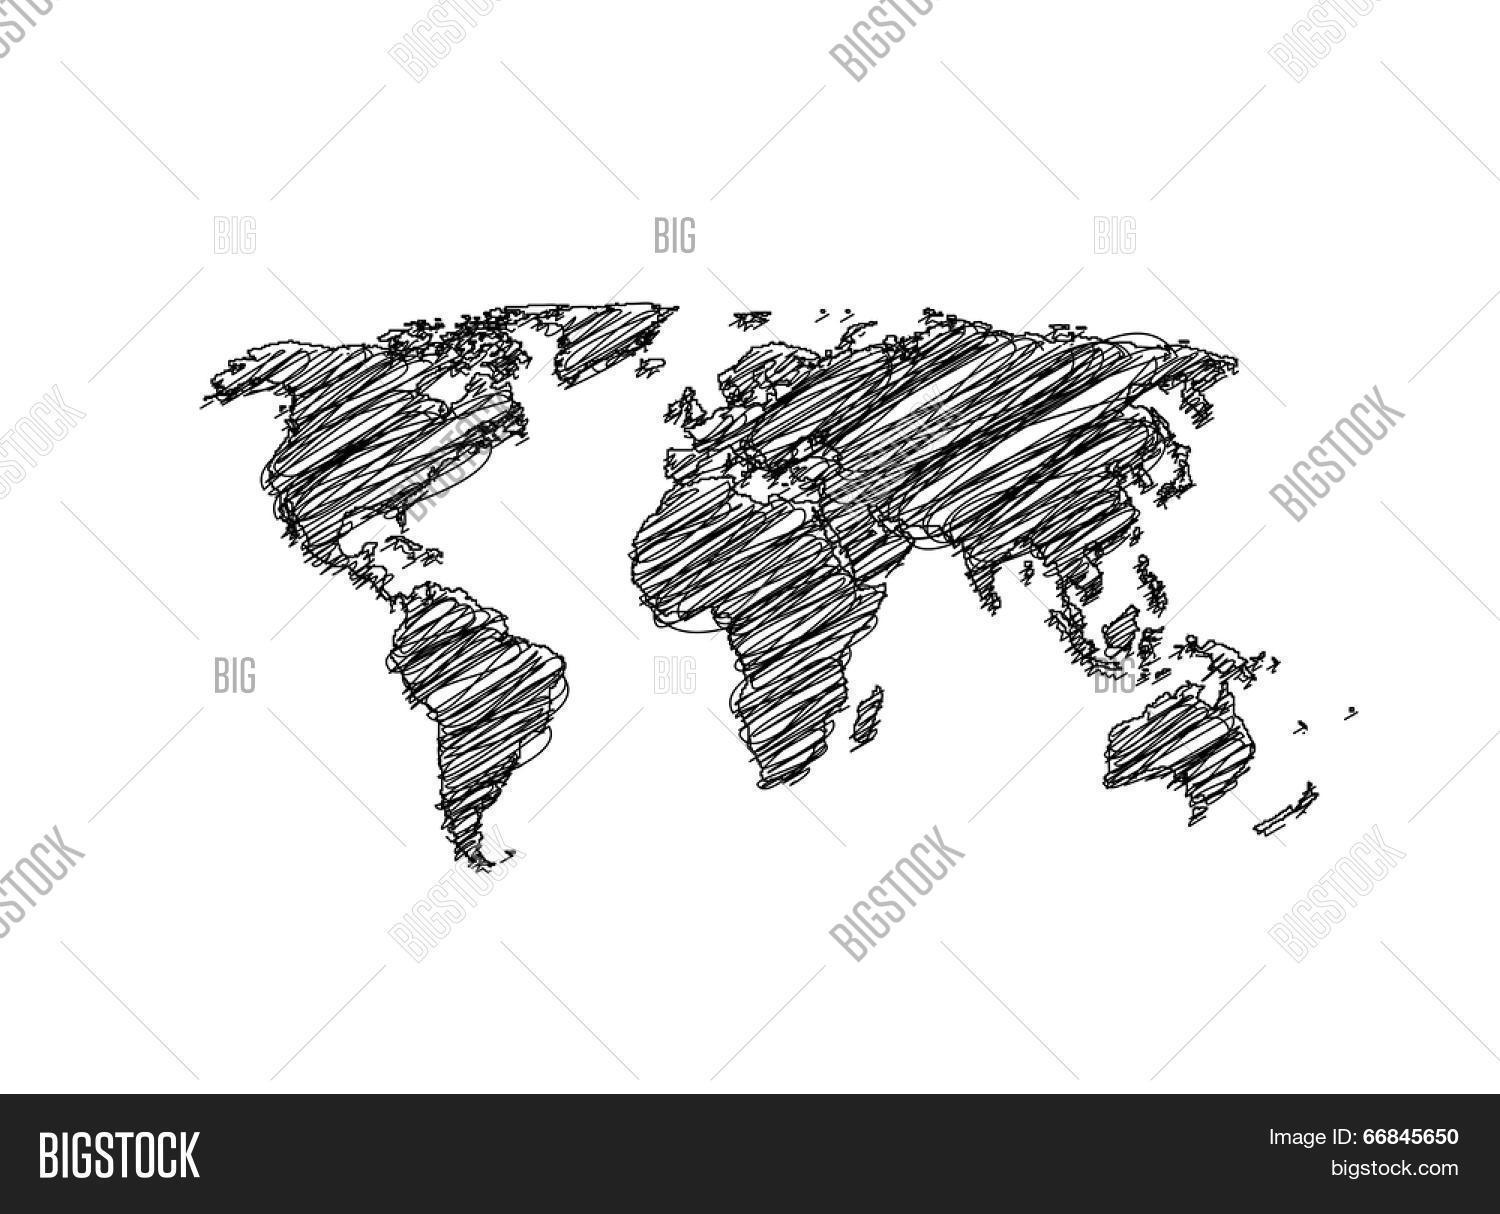 Hand sketch world map globe vector vector photo bigstock hand sketch world map globe vector easy all editable gumiabroncs Gallery